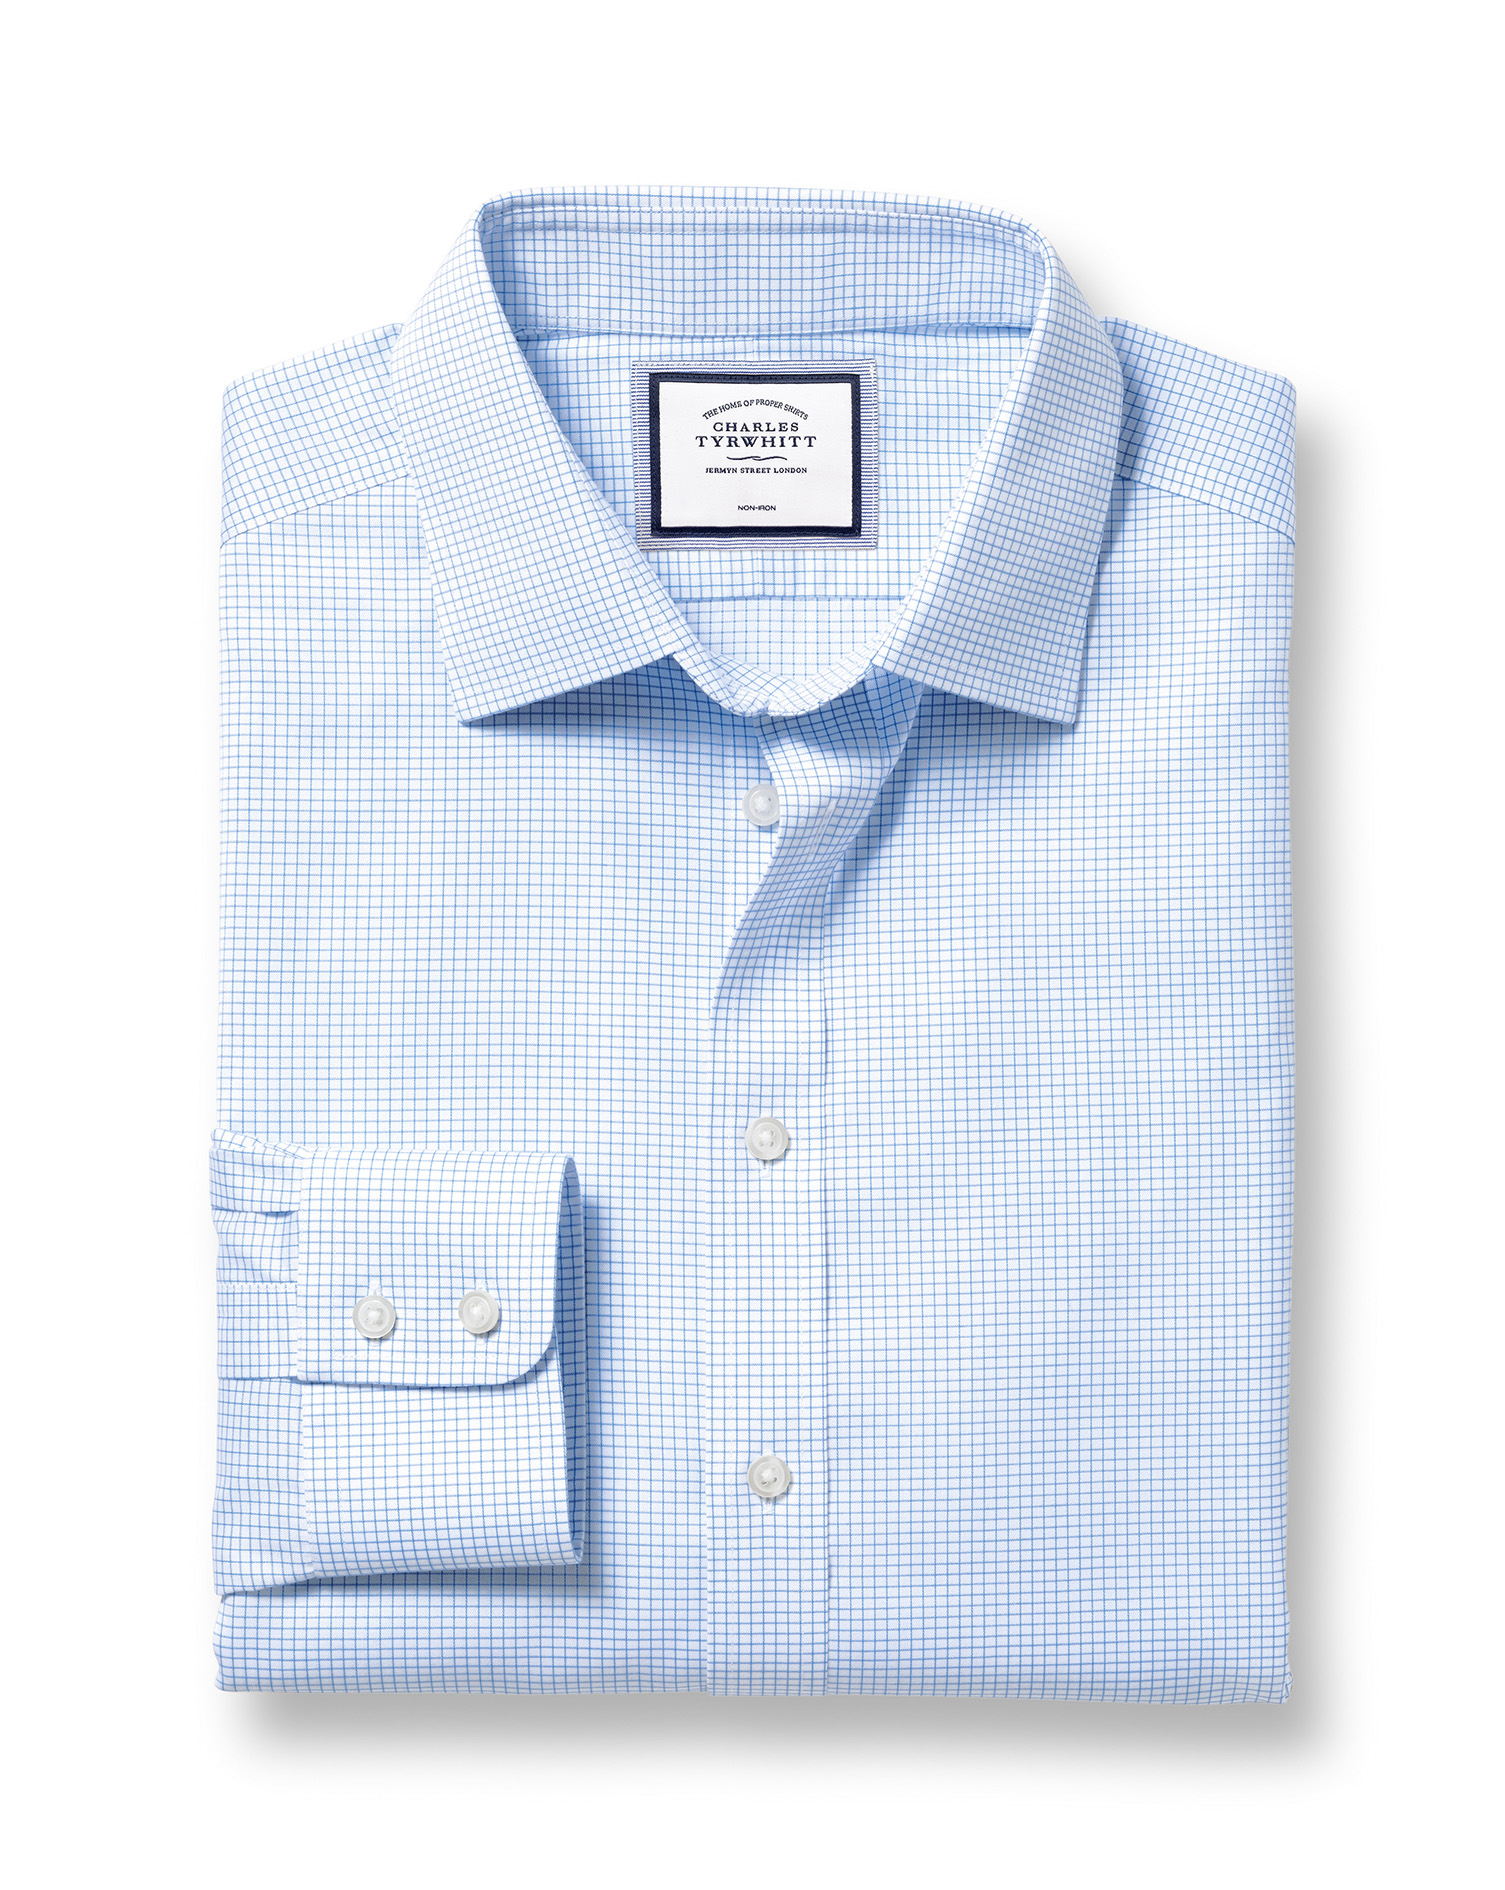 Slim Fit Non-Iron Sky Blue Mini Grid Check Twill Cotton Formal Shirt Double Cuff Size 16.5/34 by Cha